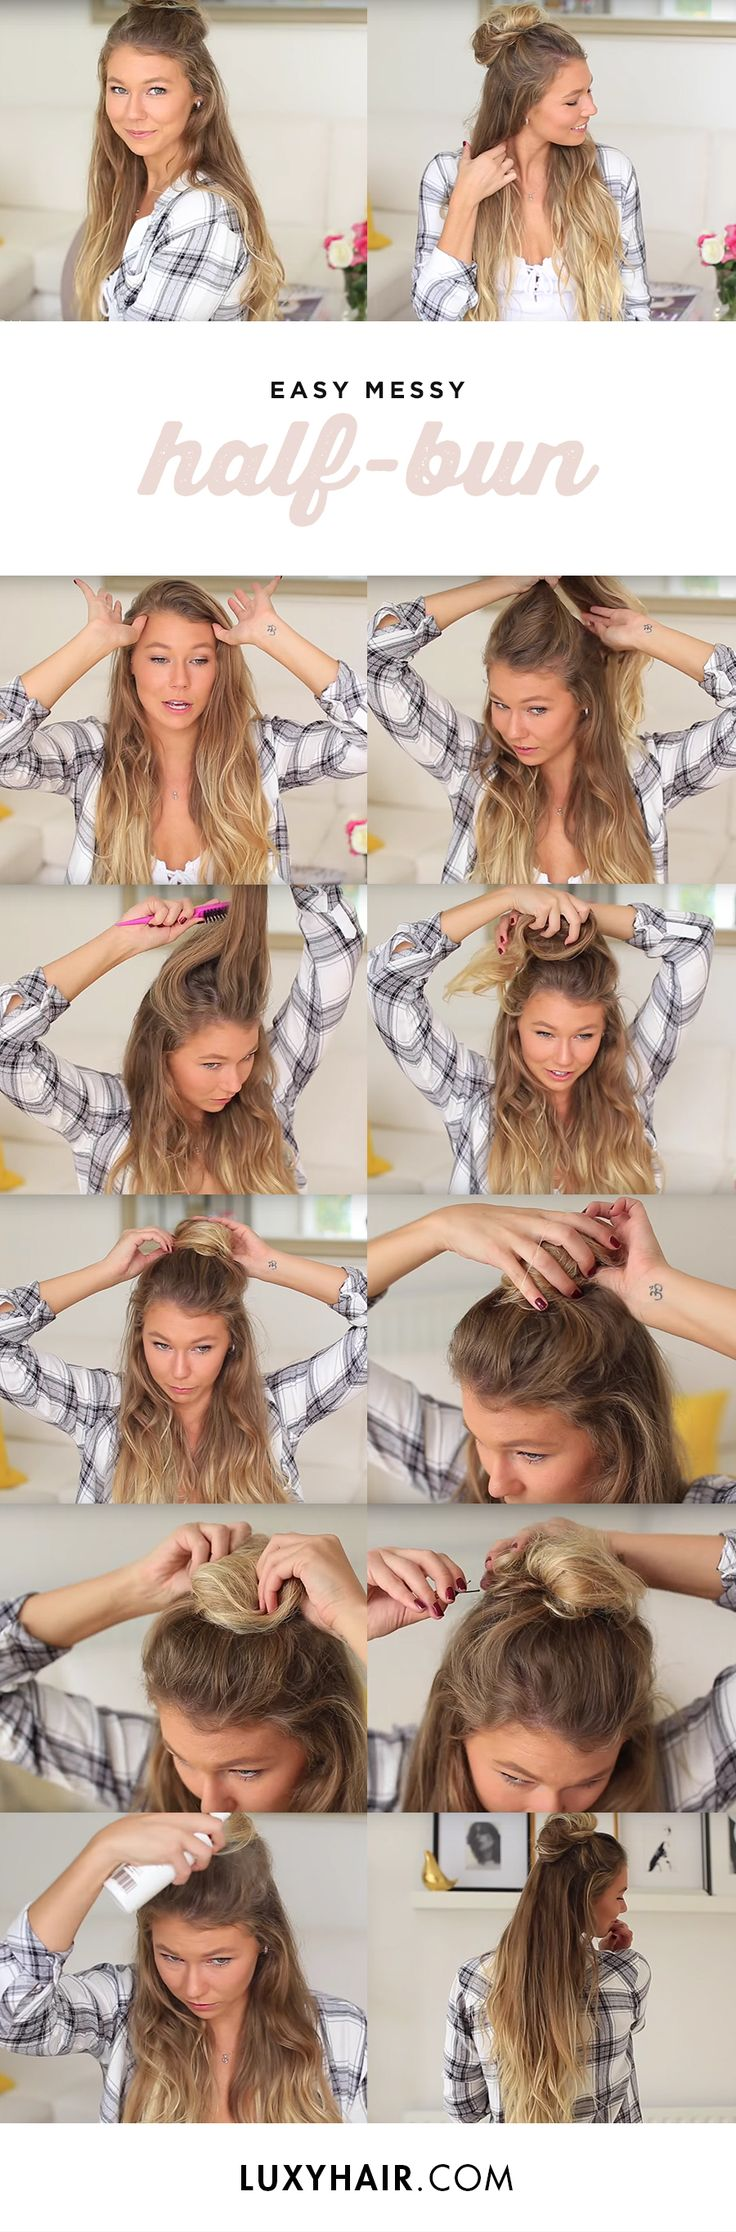 "Have you tried our messy half-bun? In this fun tutorial by @alexcentomo, we show you how to achieve a very easy hairstyle that is perfect for those lazy summer days ♥Alex is wearing her 24"" Ash Blonde #LuxyHairExtensions to add more volume and length to her hair. Her set has been custom colored to match her ombre hair perfectly."